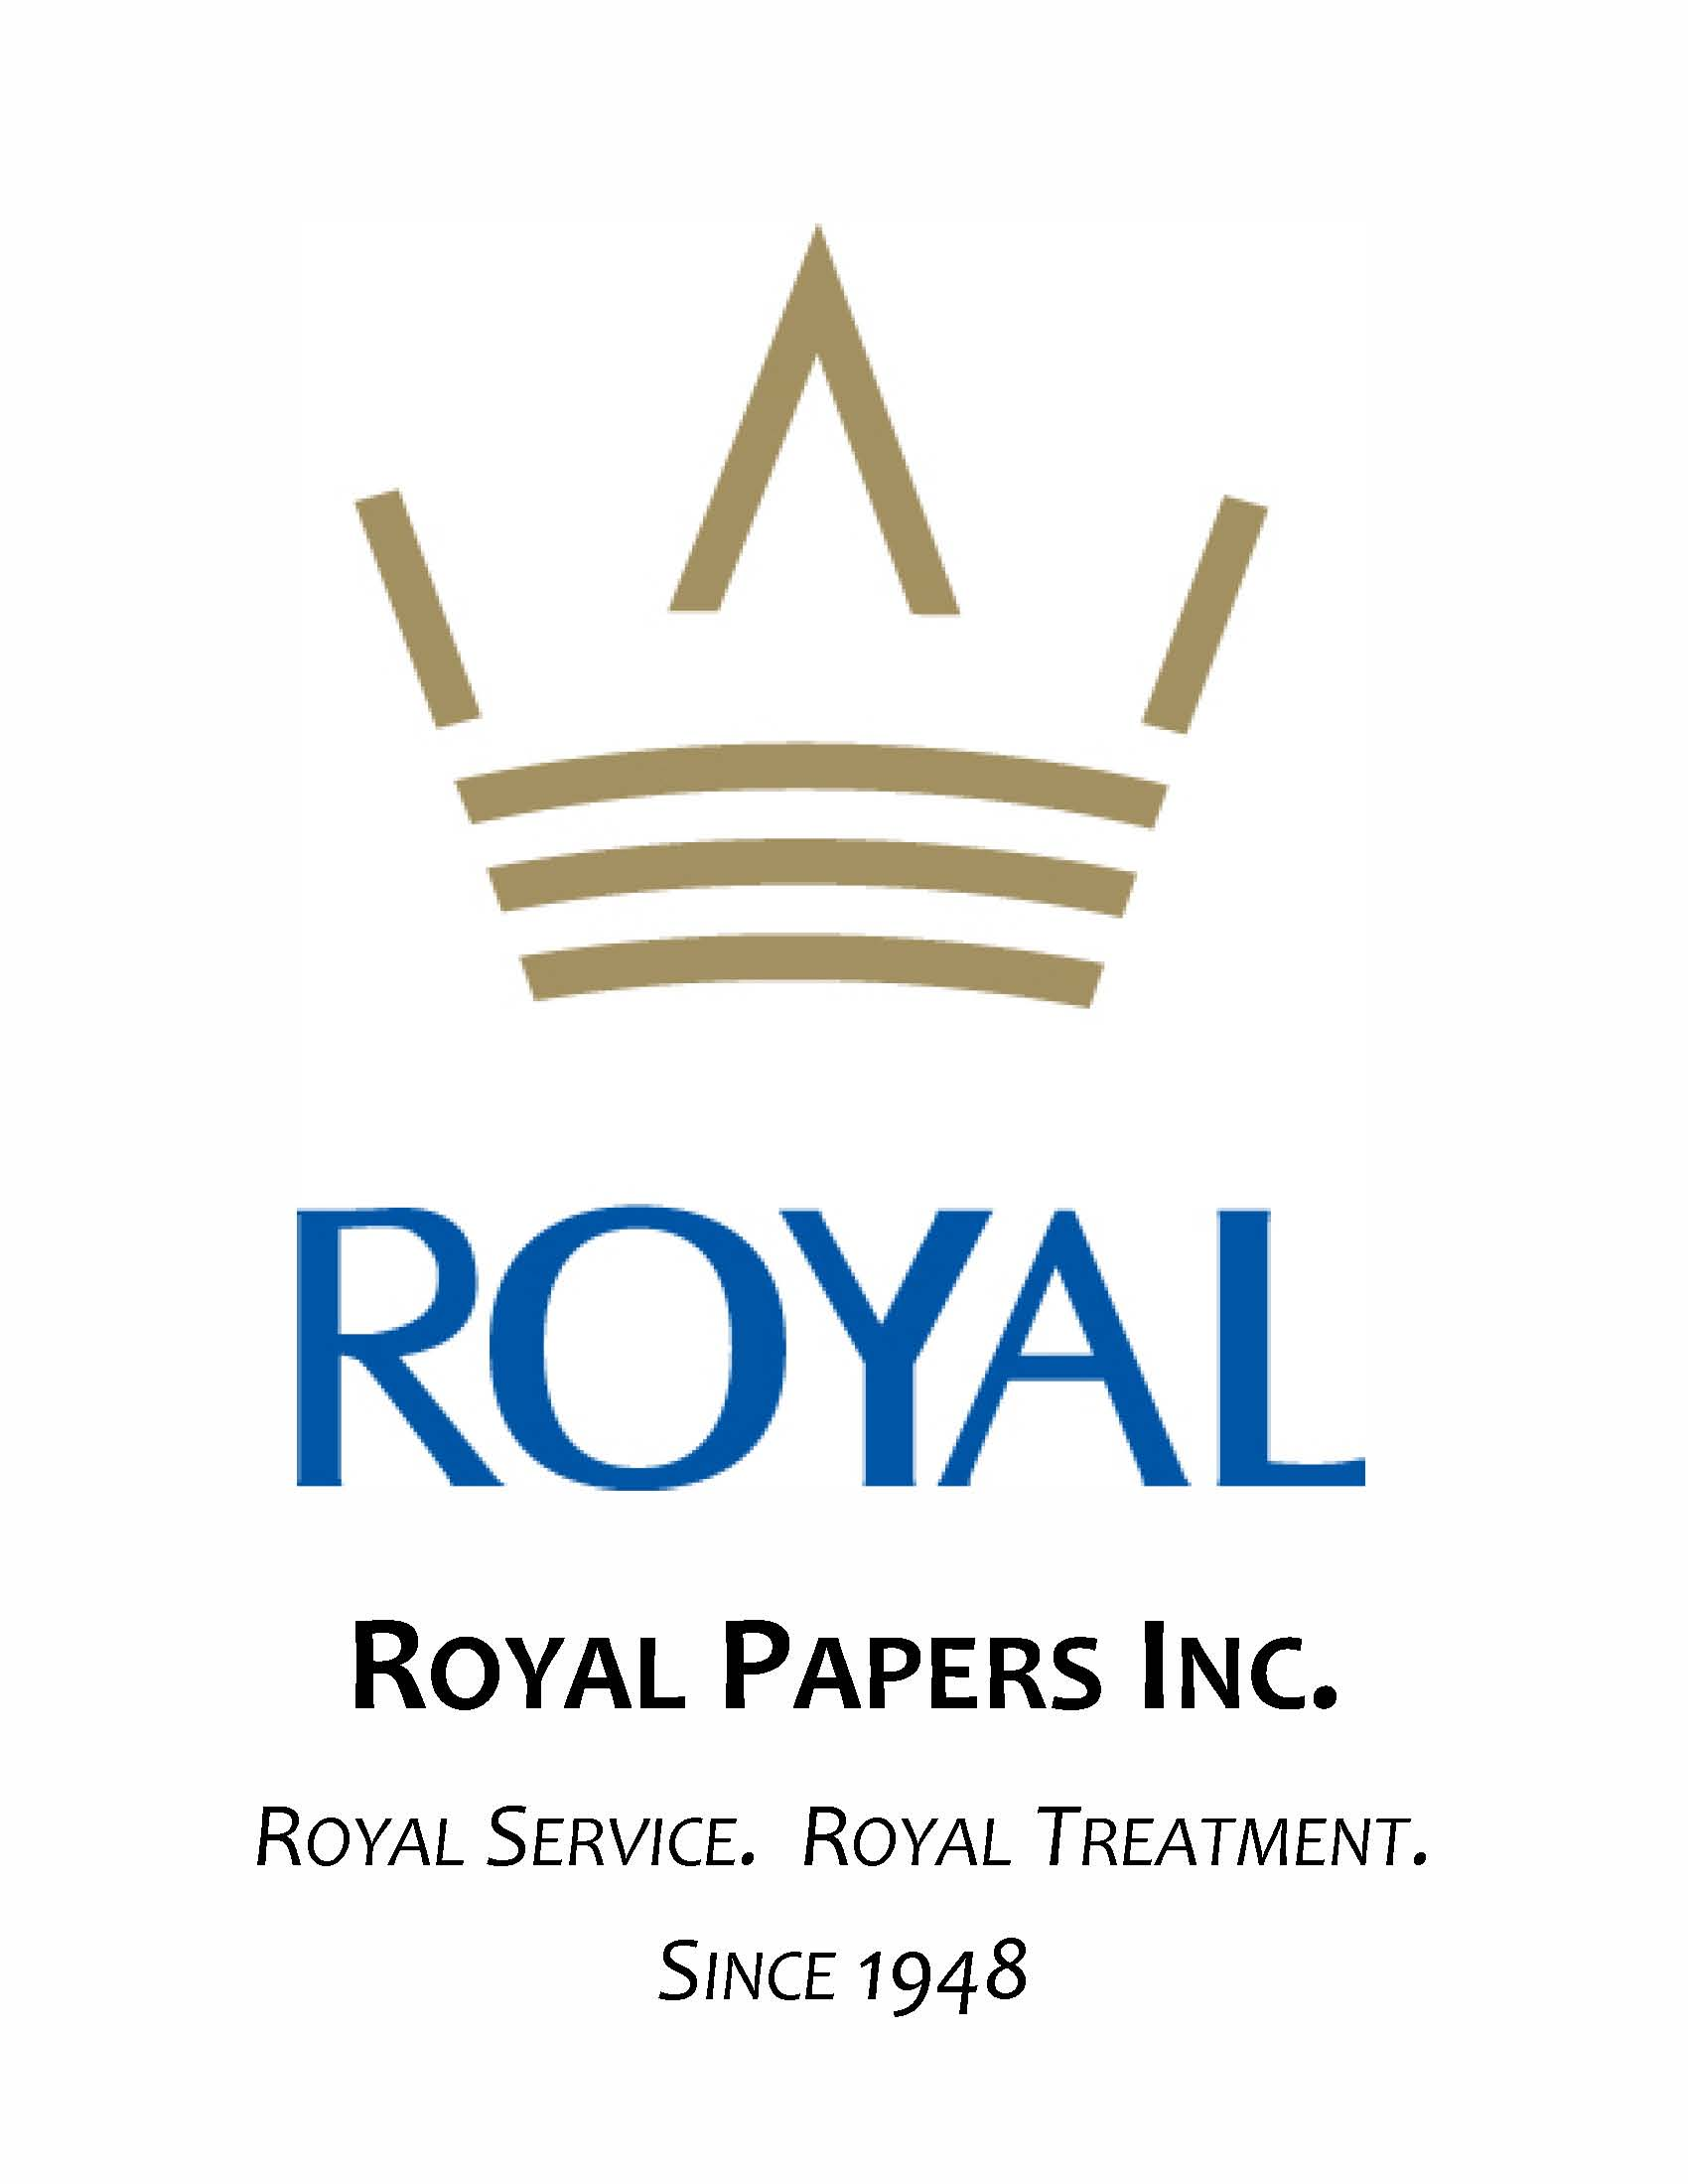 Royal Papers